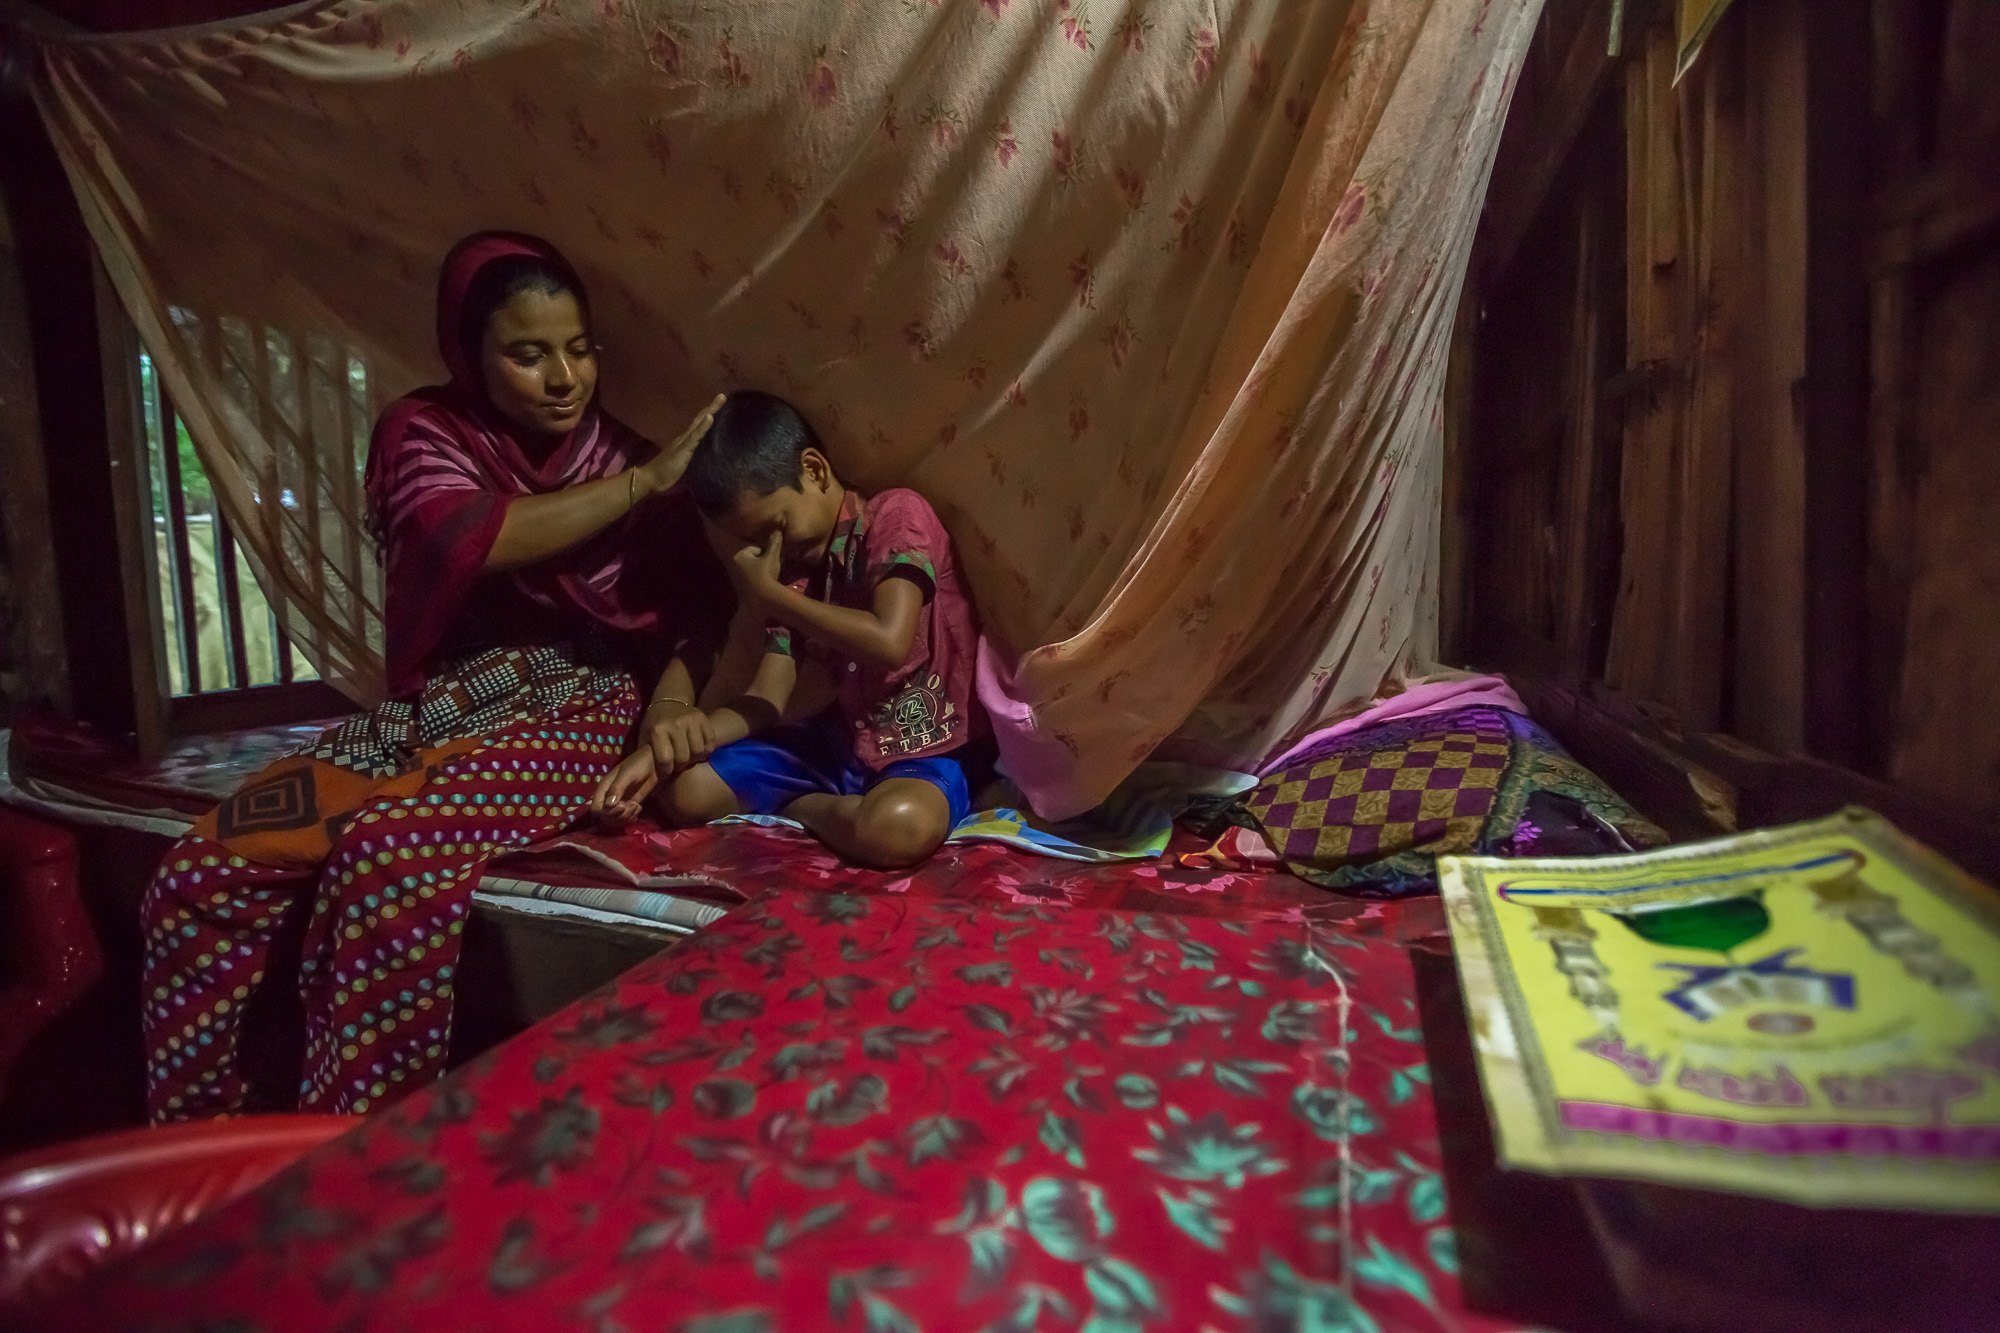 Ruma Begum, 28, a fish farmer in southern Bangladesh, helps her son, Bulbul, get ready for school.